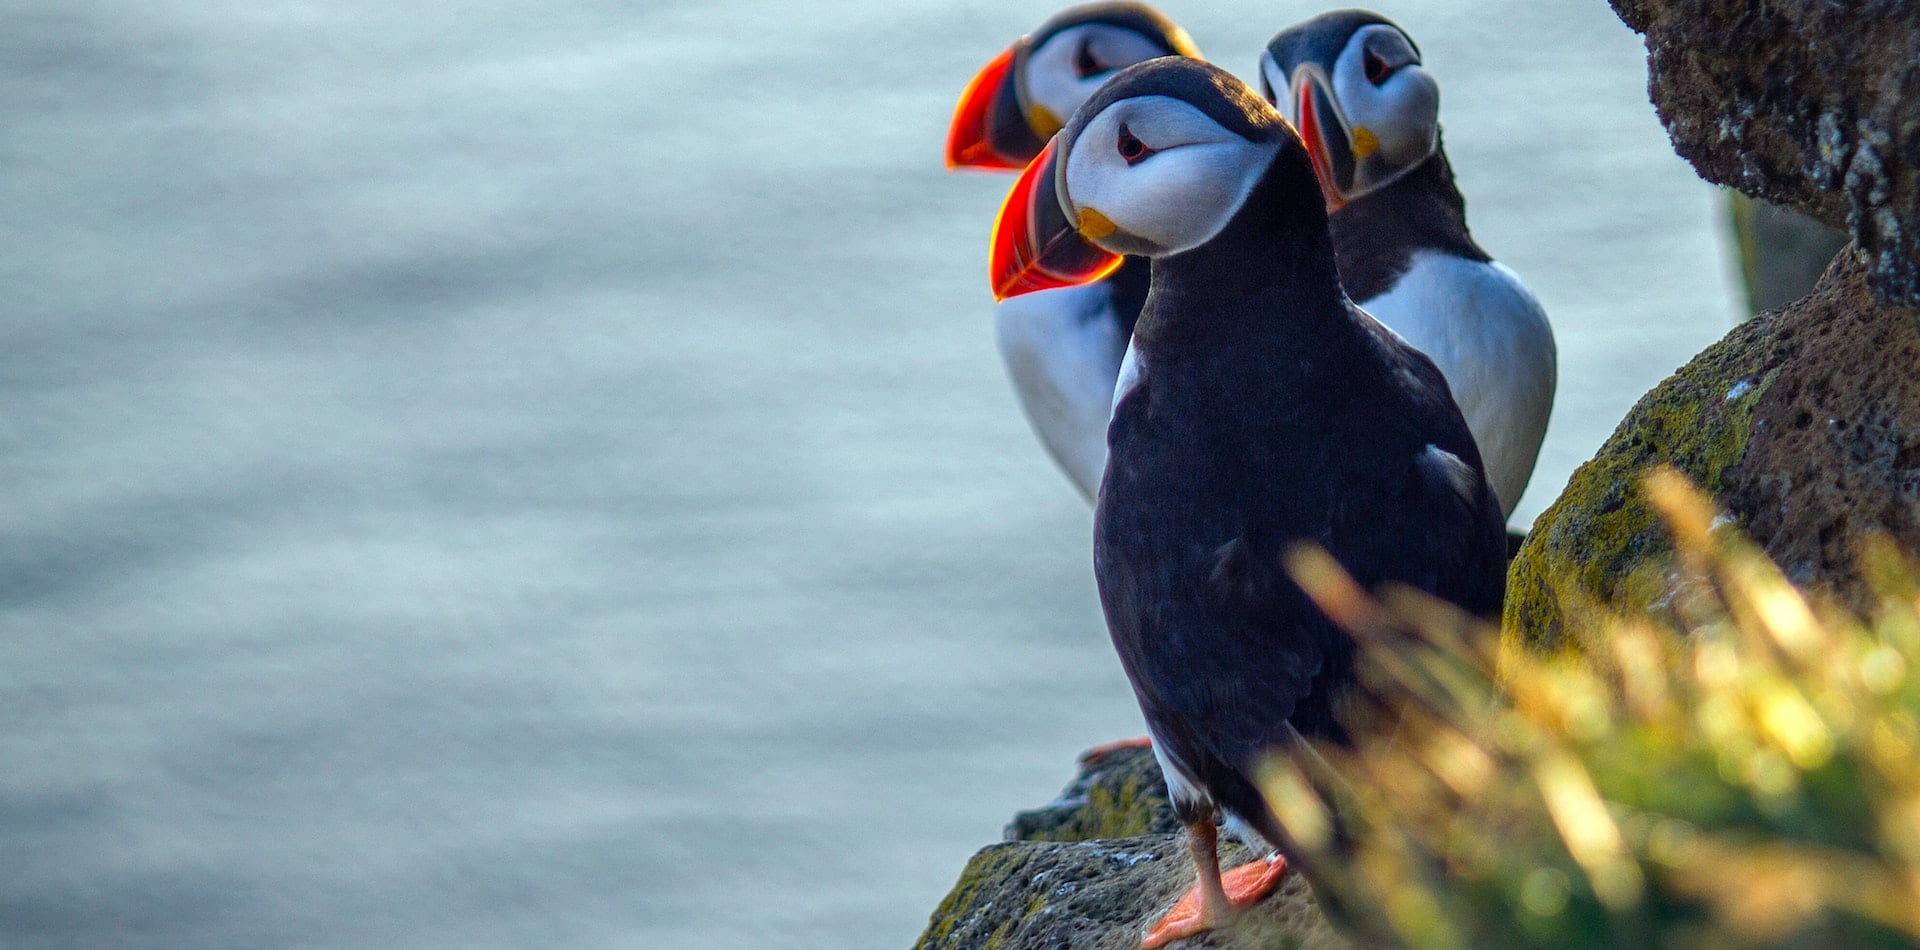 Puffins perched on a cliff edge in Scotland, UK wildlife safari